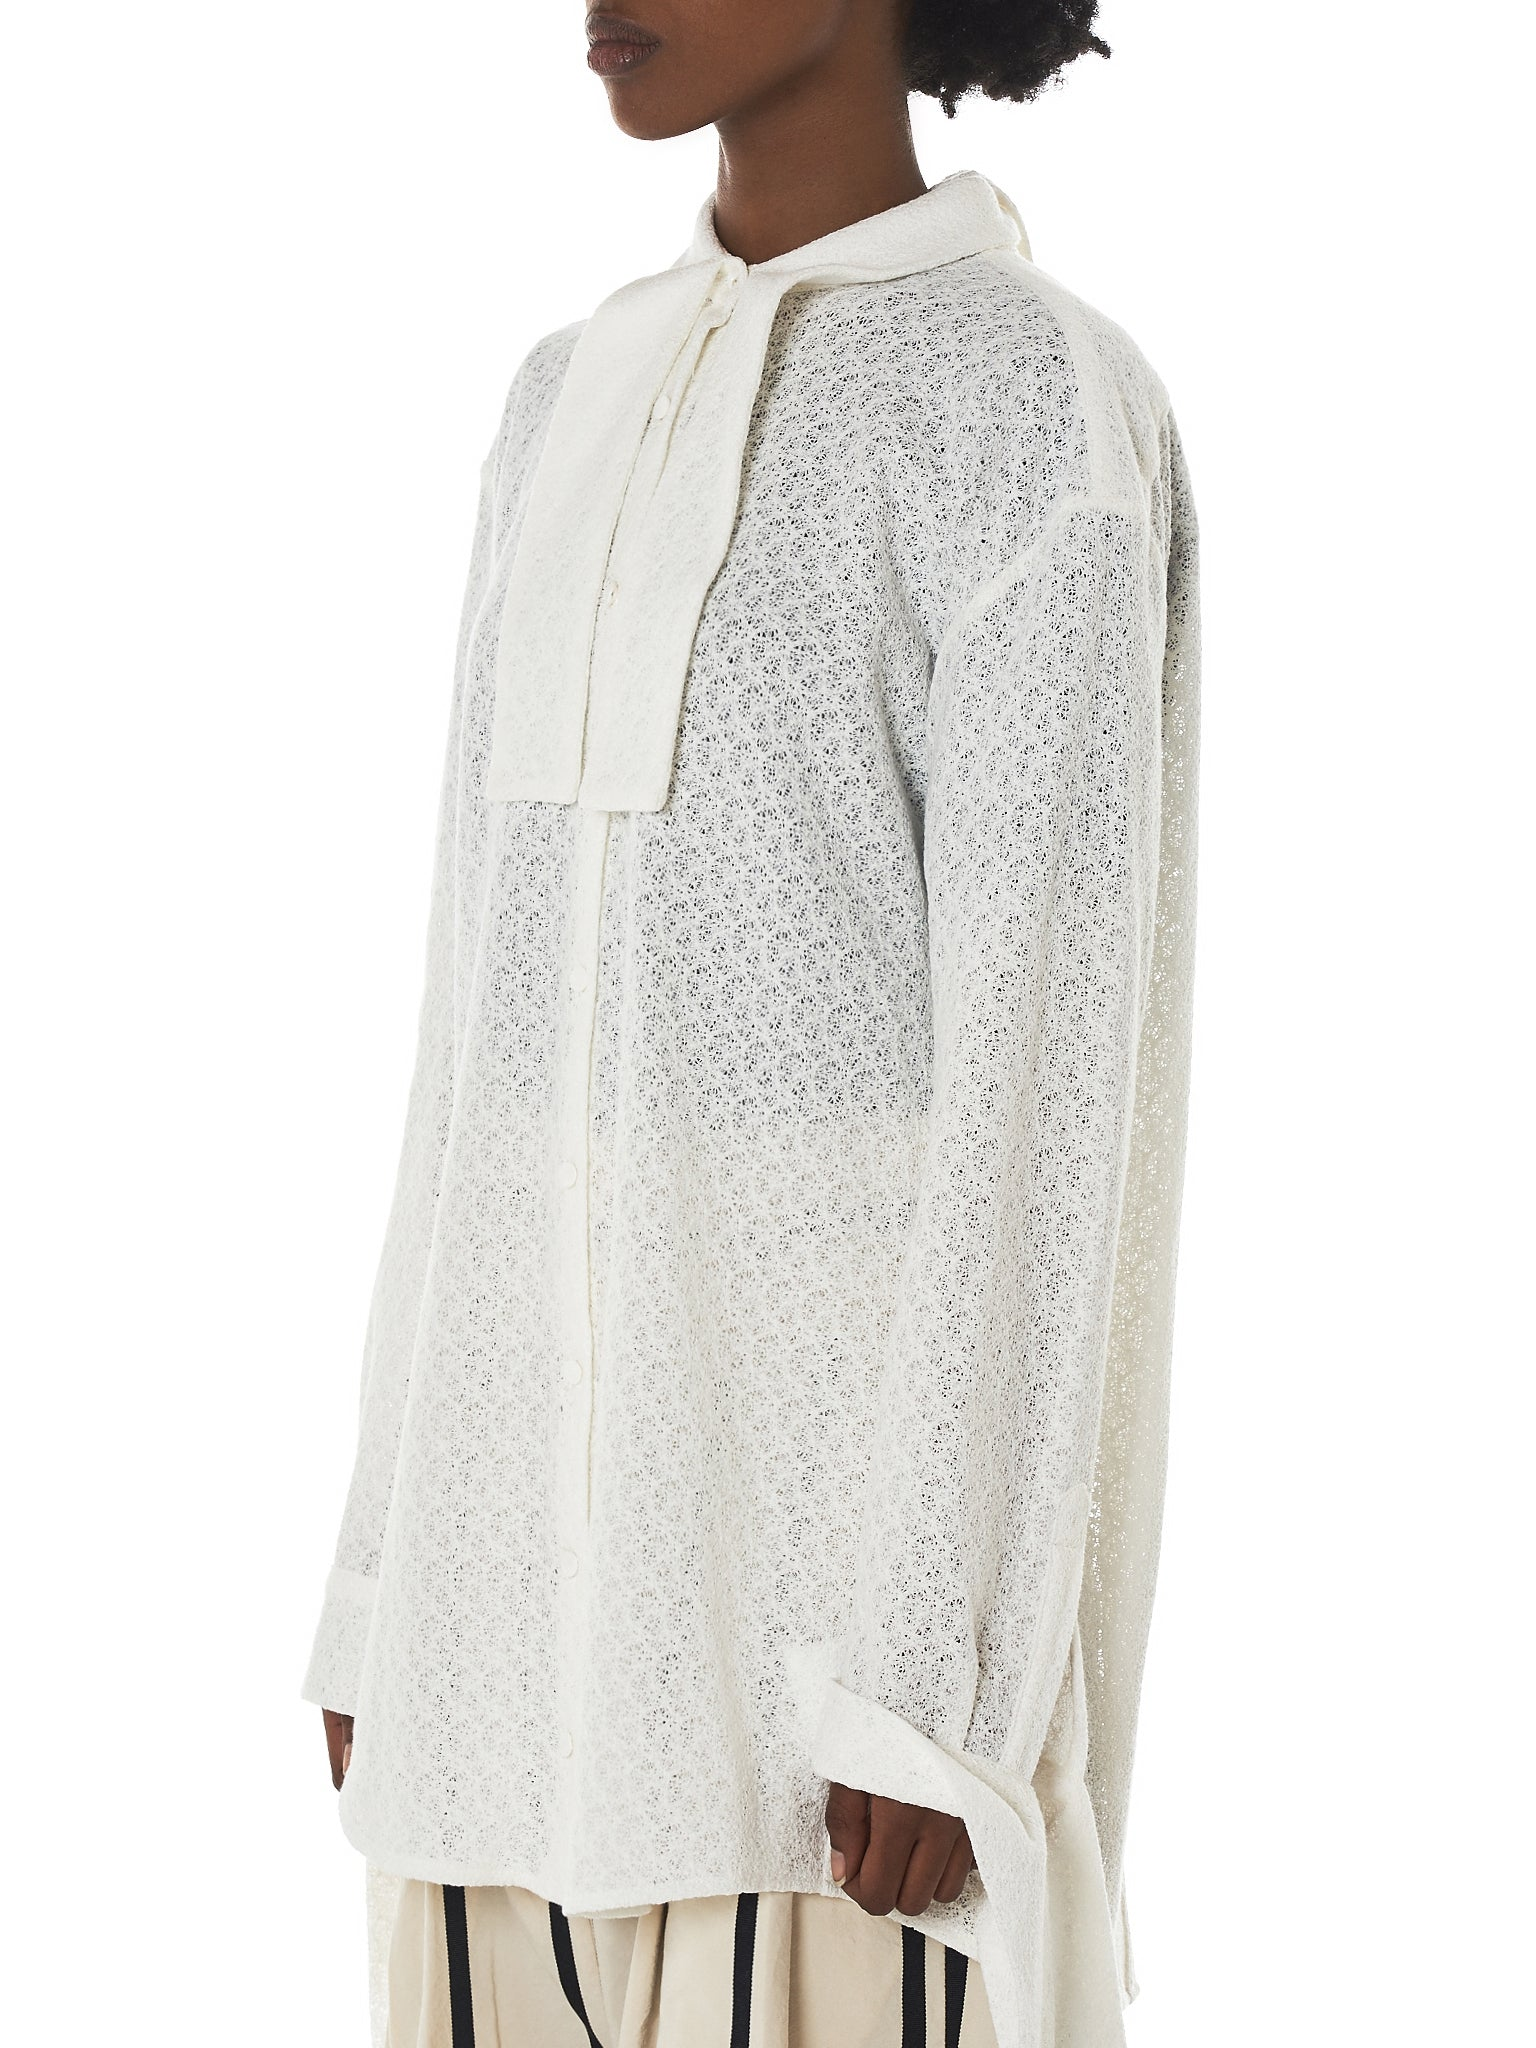 Daniel Gregory Natale Blouse - Hlorenzo Side